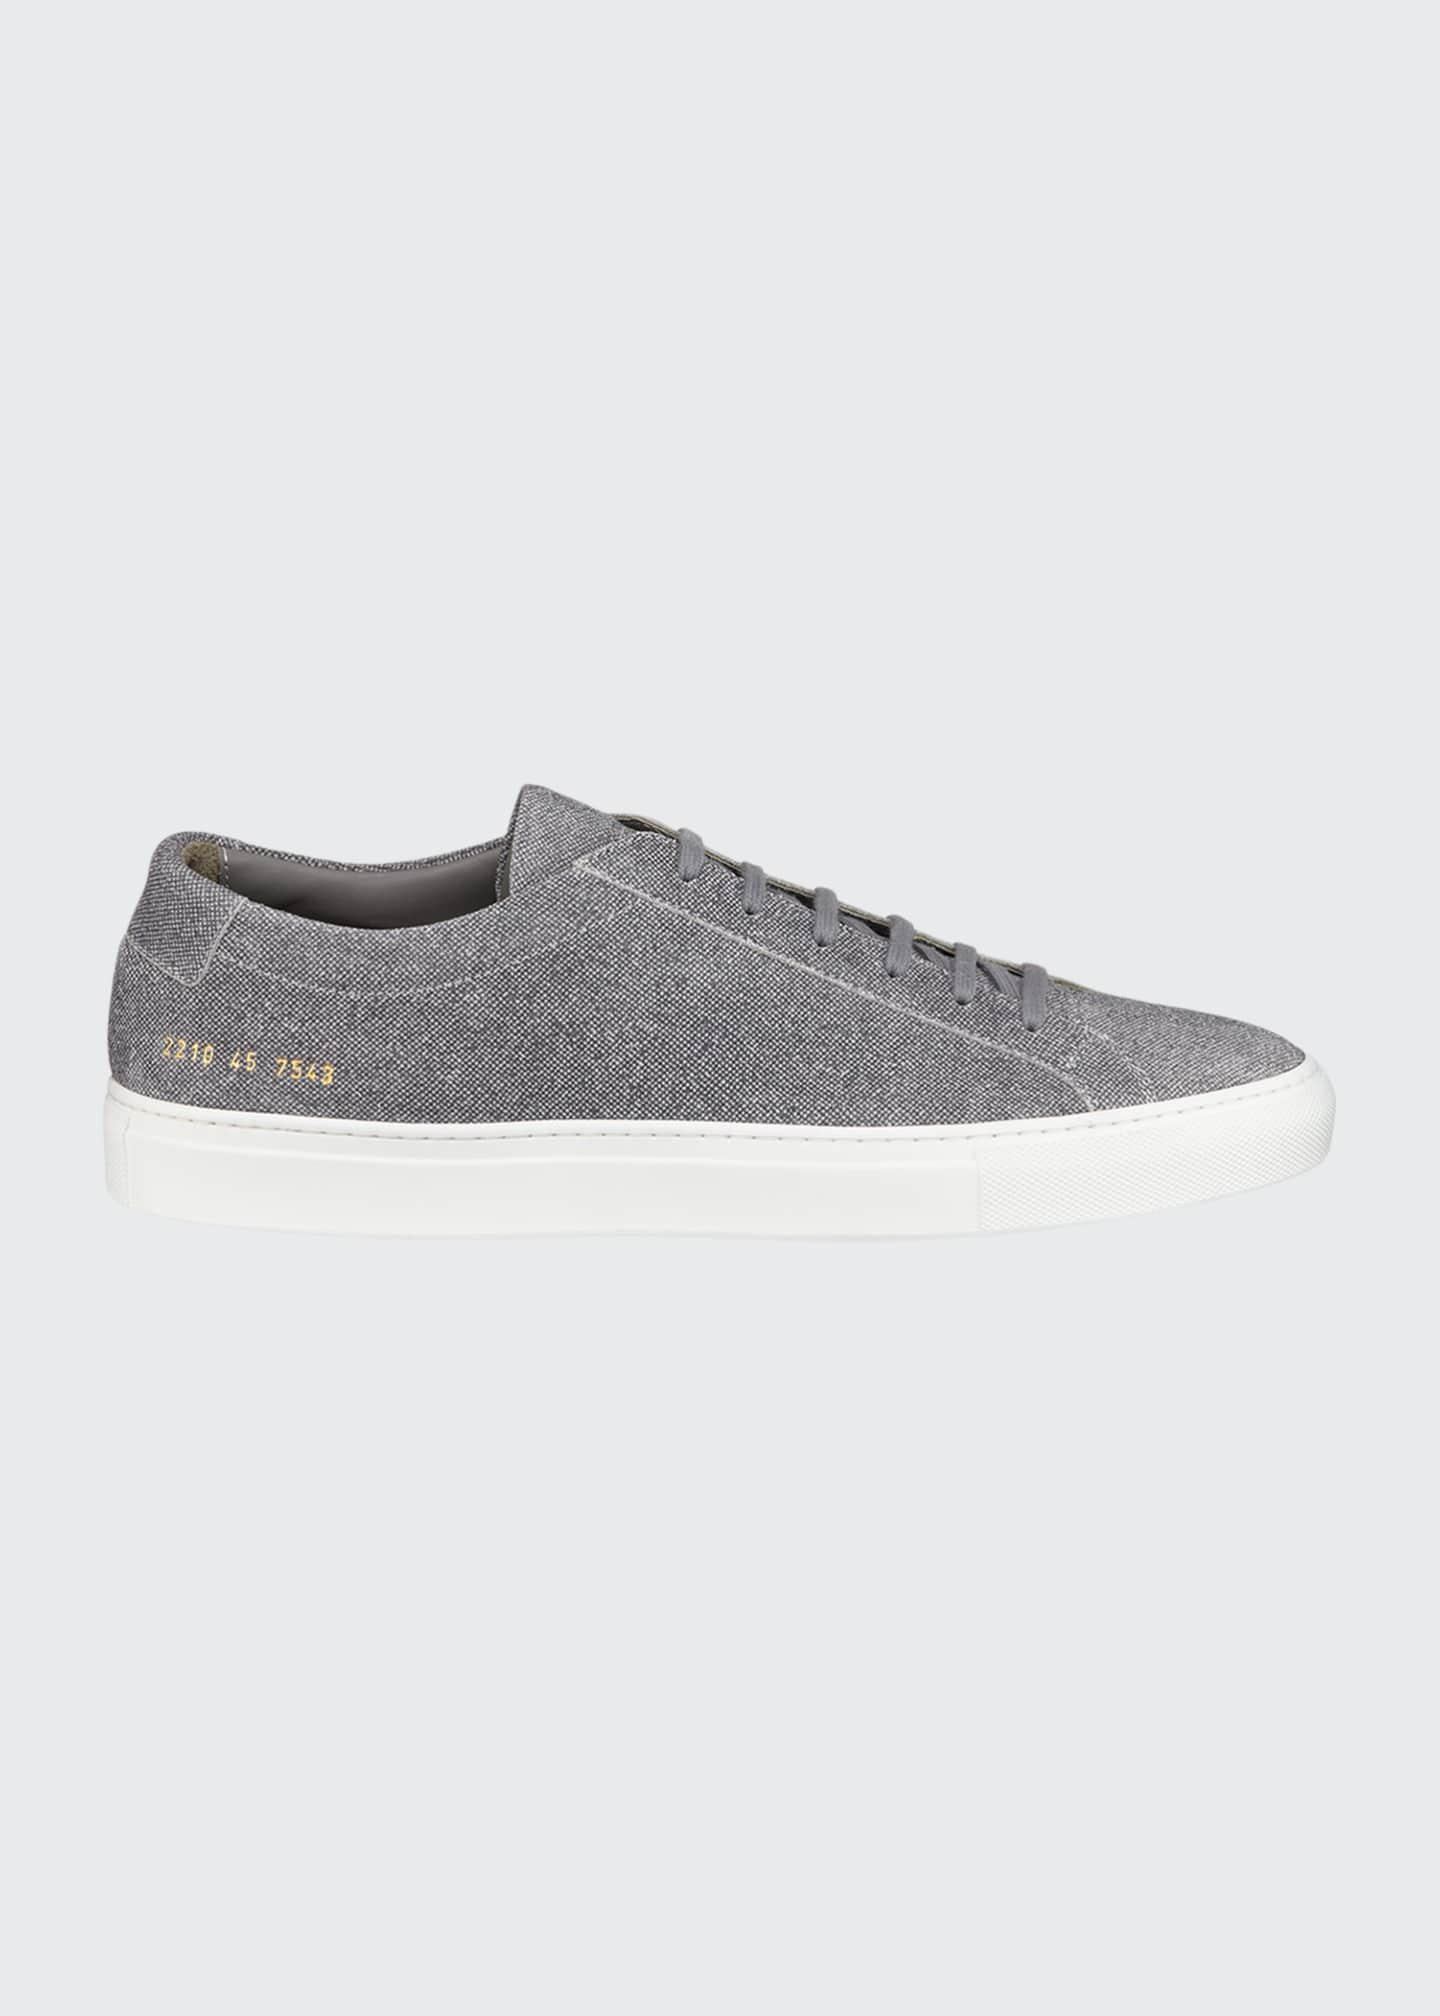 Image 1 of 4: Men's Achilles Patterned Suede Low-Top Sneakers